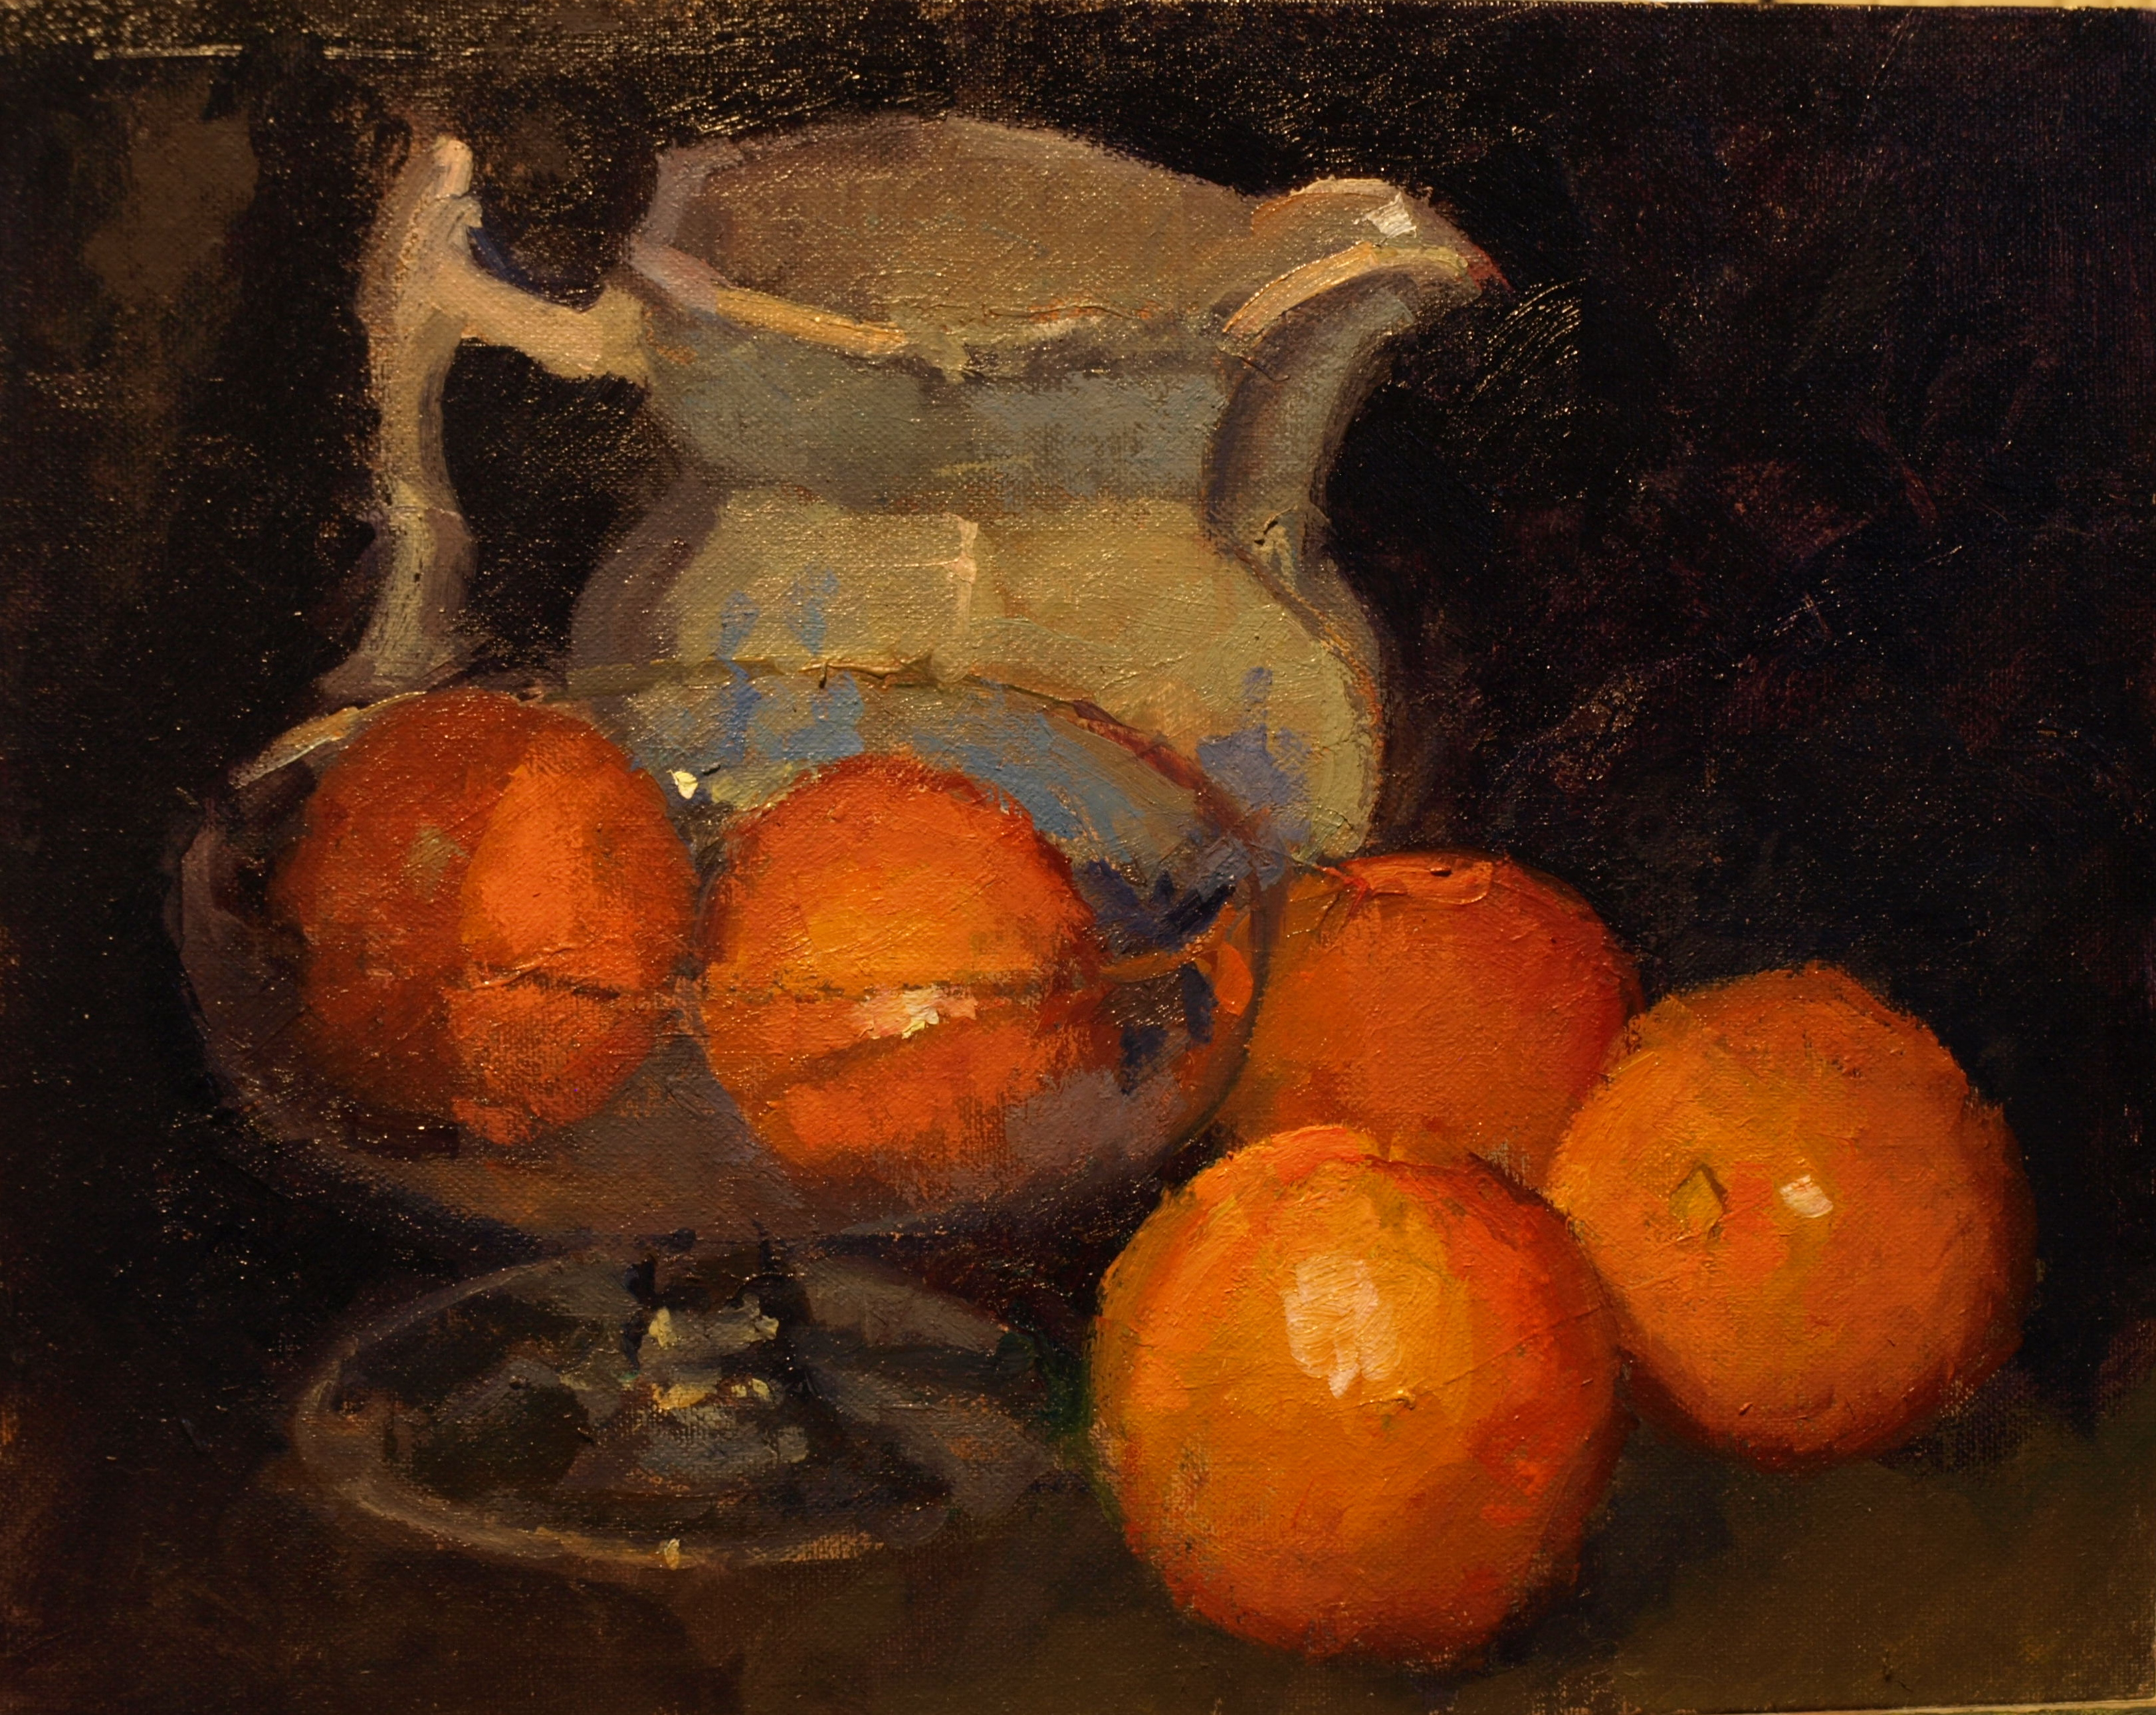 Oranges and Pitcher, Oil on Panel, 11 x 14 Inches, by Susan Grisell, $300